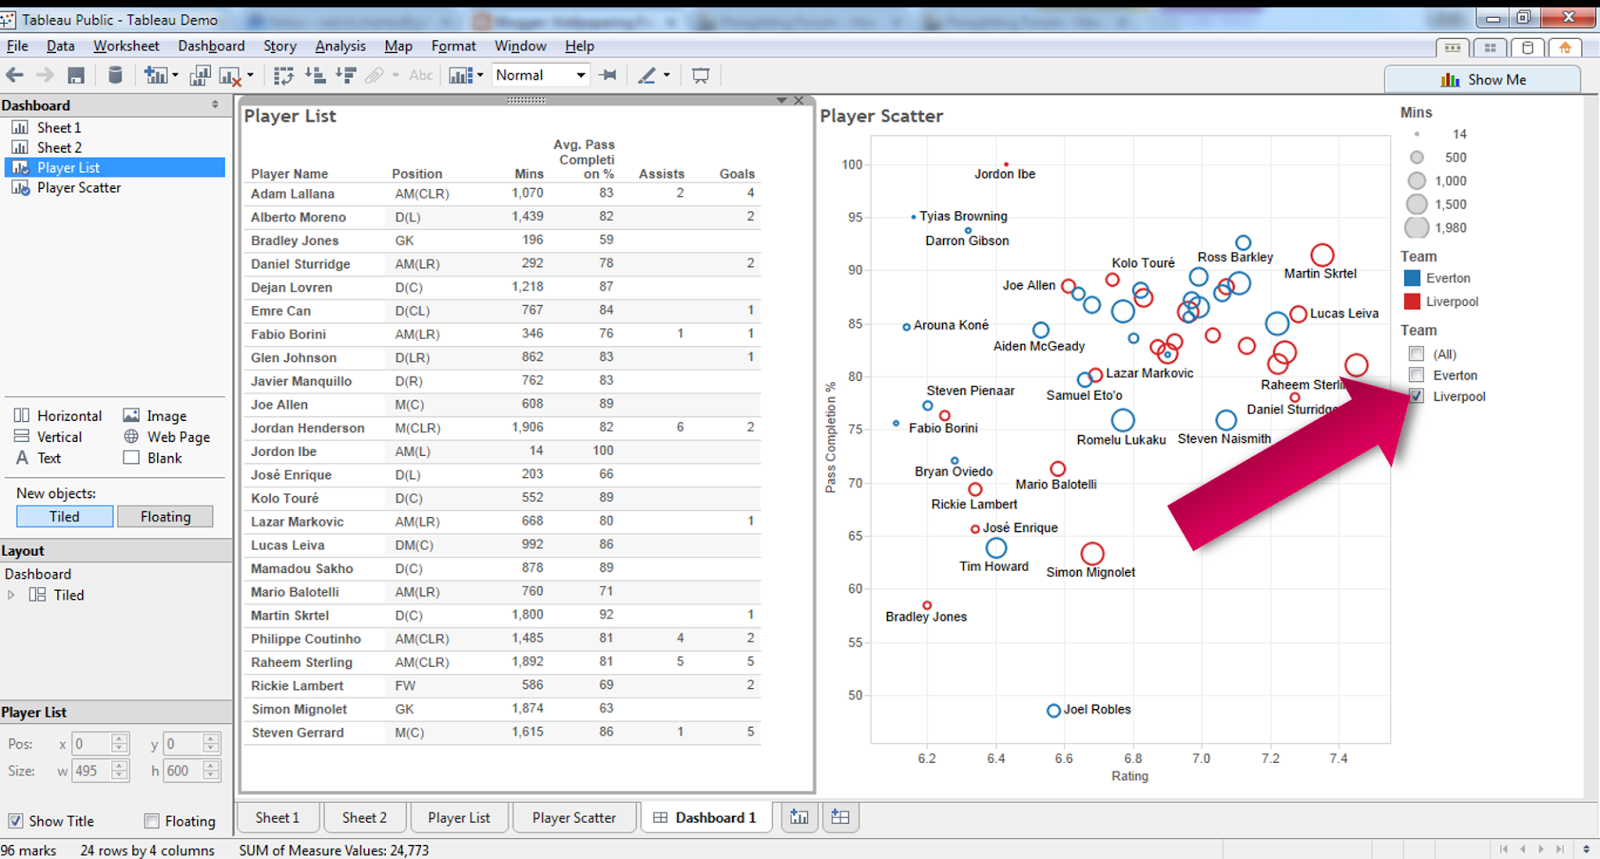 Wallpapering Fog How To Do Footballysis In Tableau